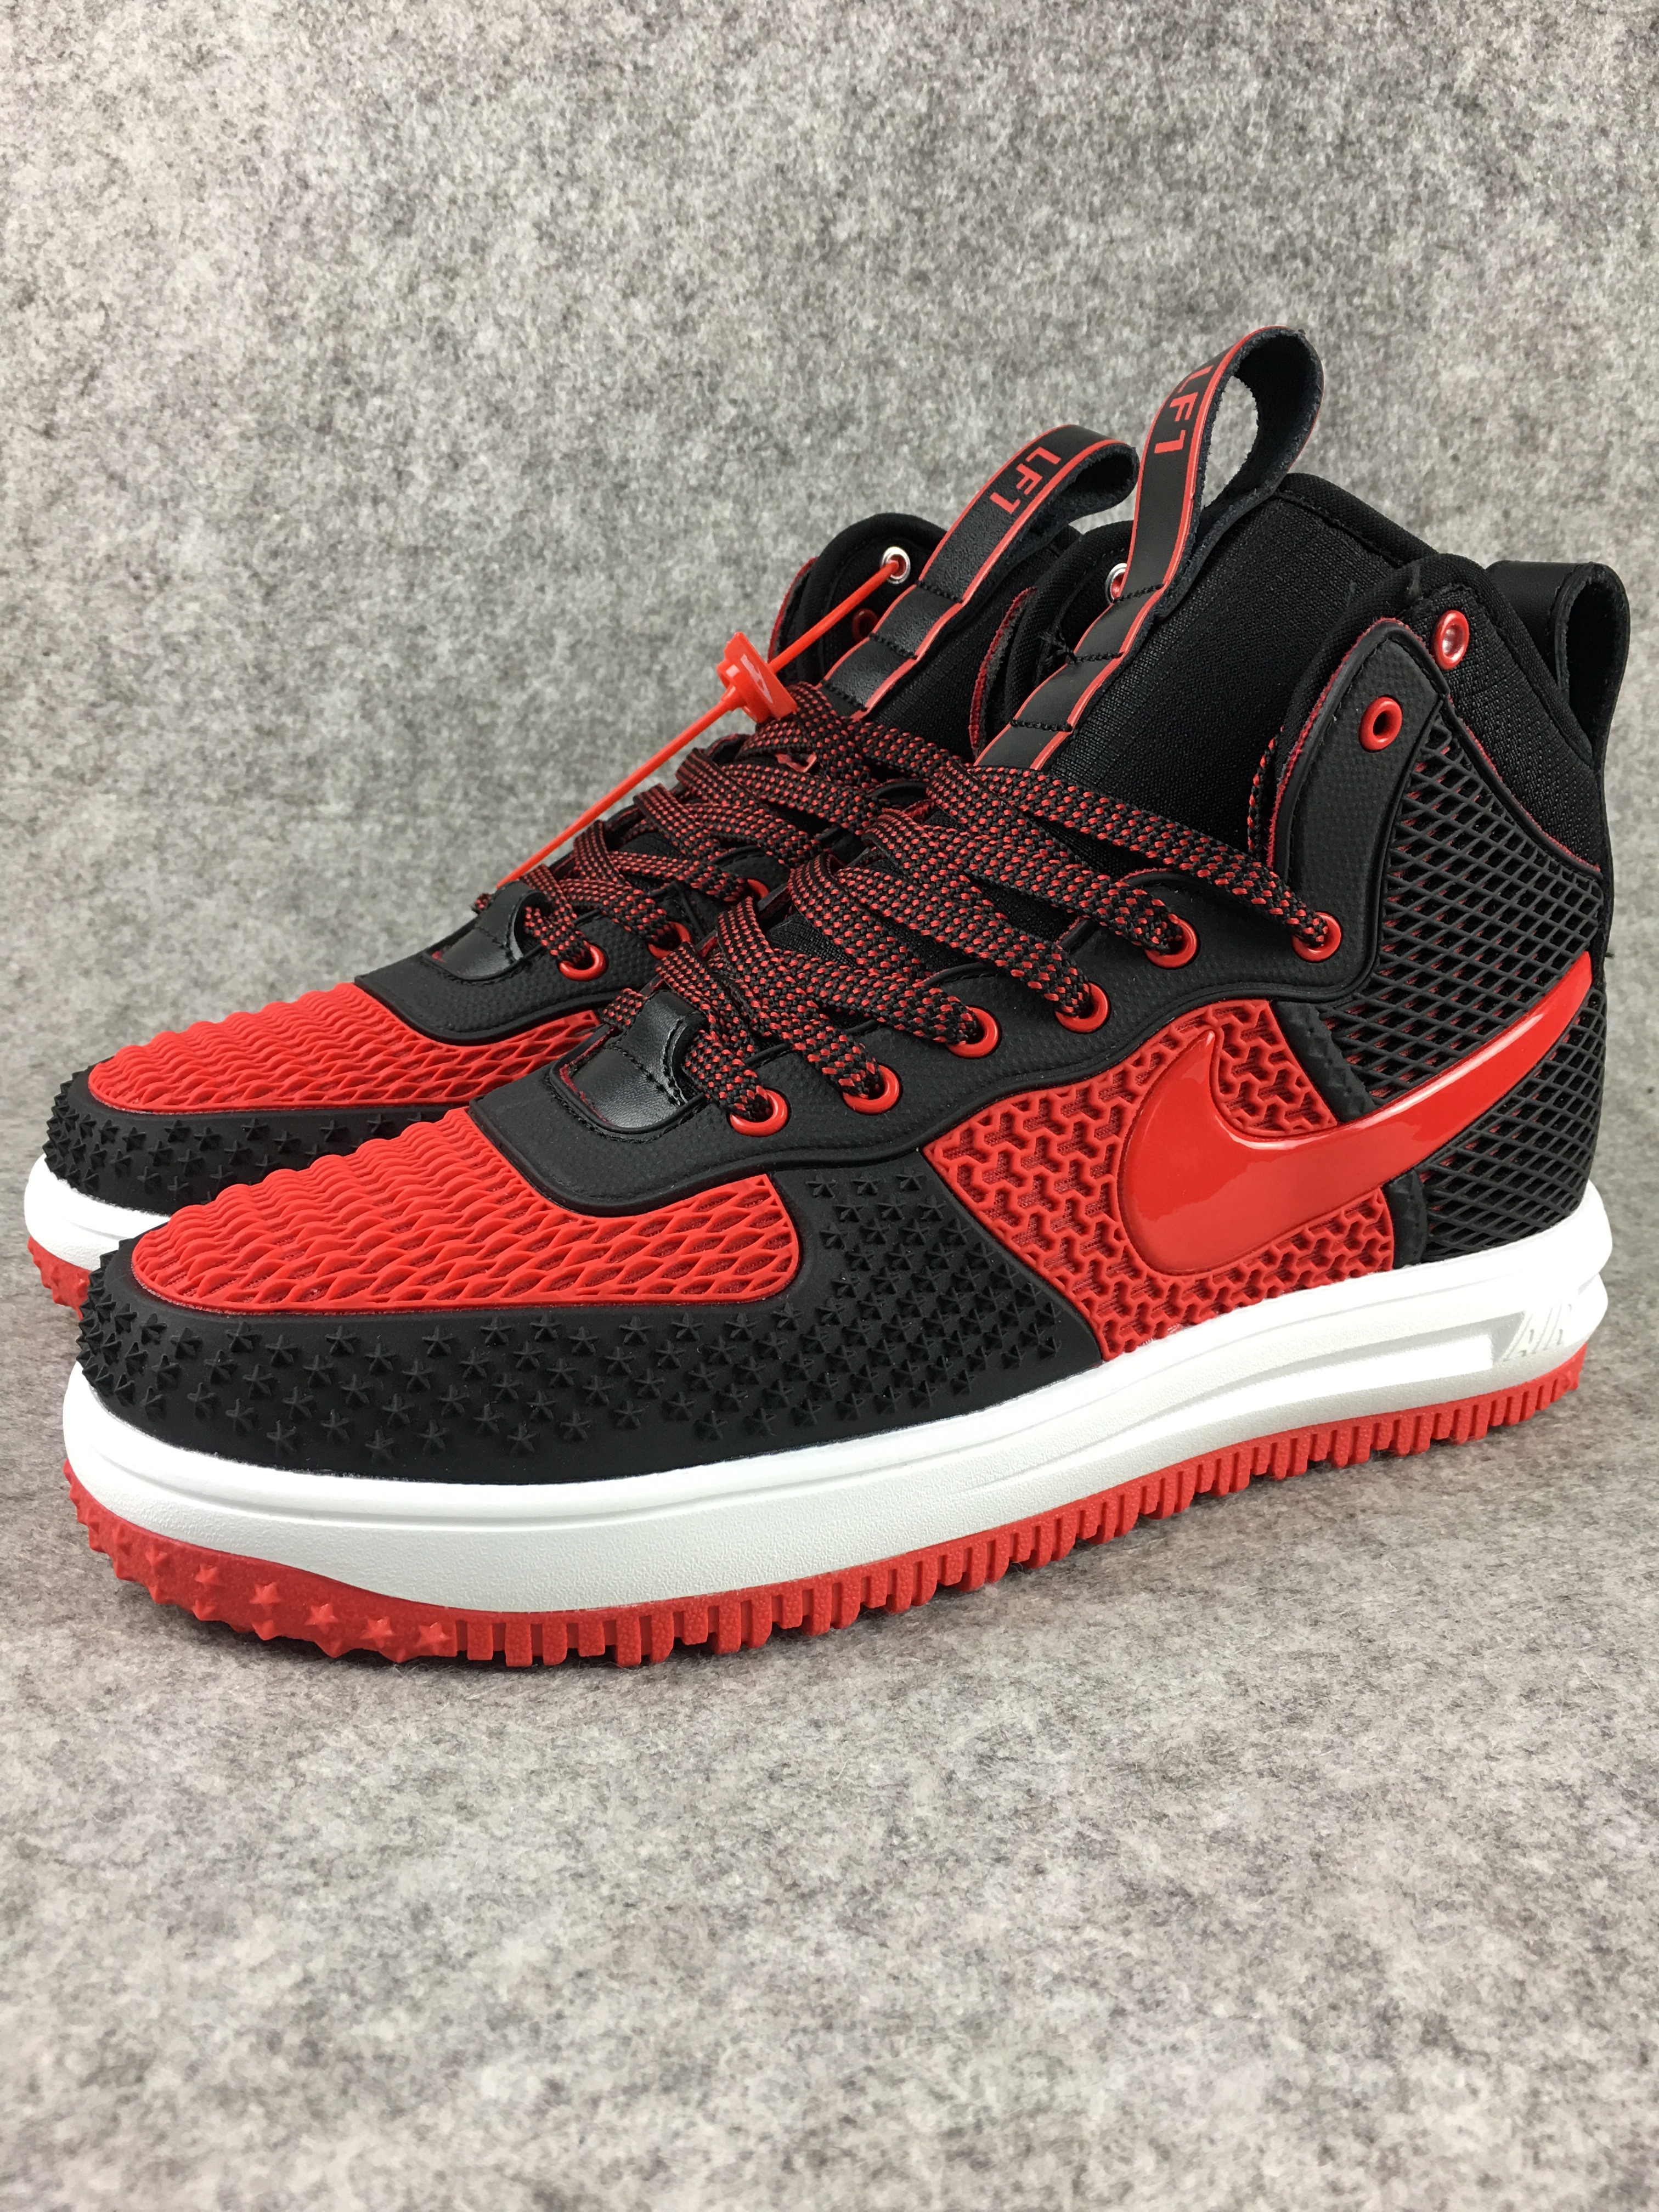 Nike Lunar Force 1 Nano Black Red Shoes